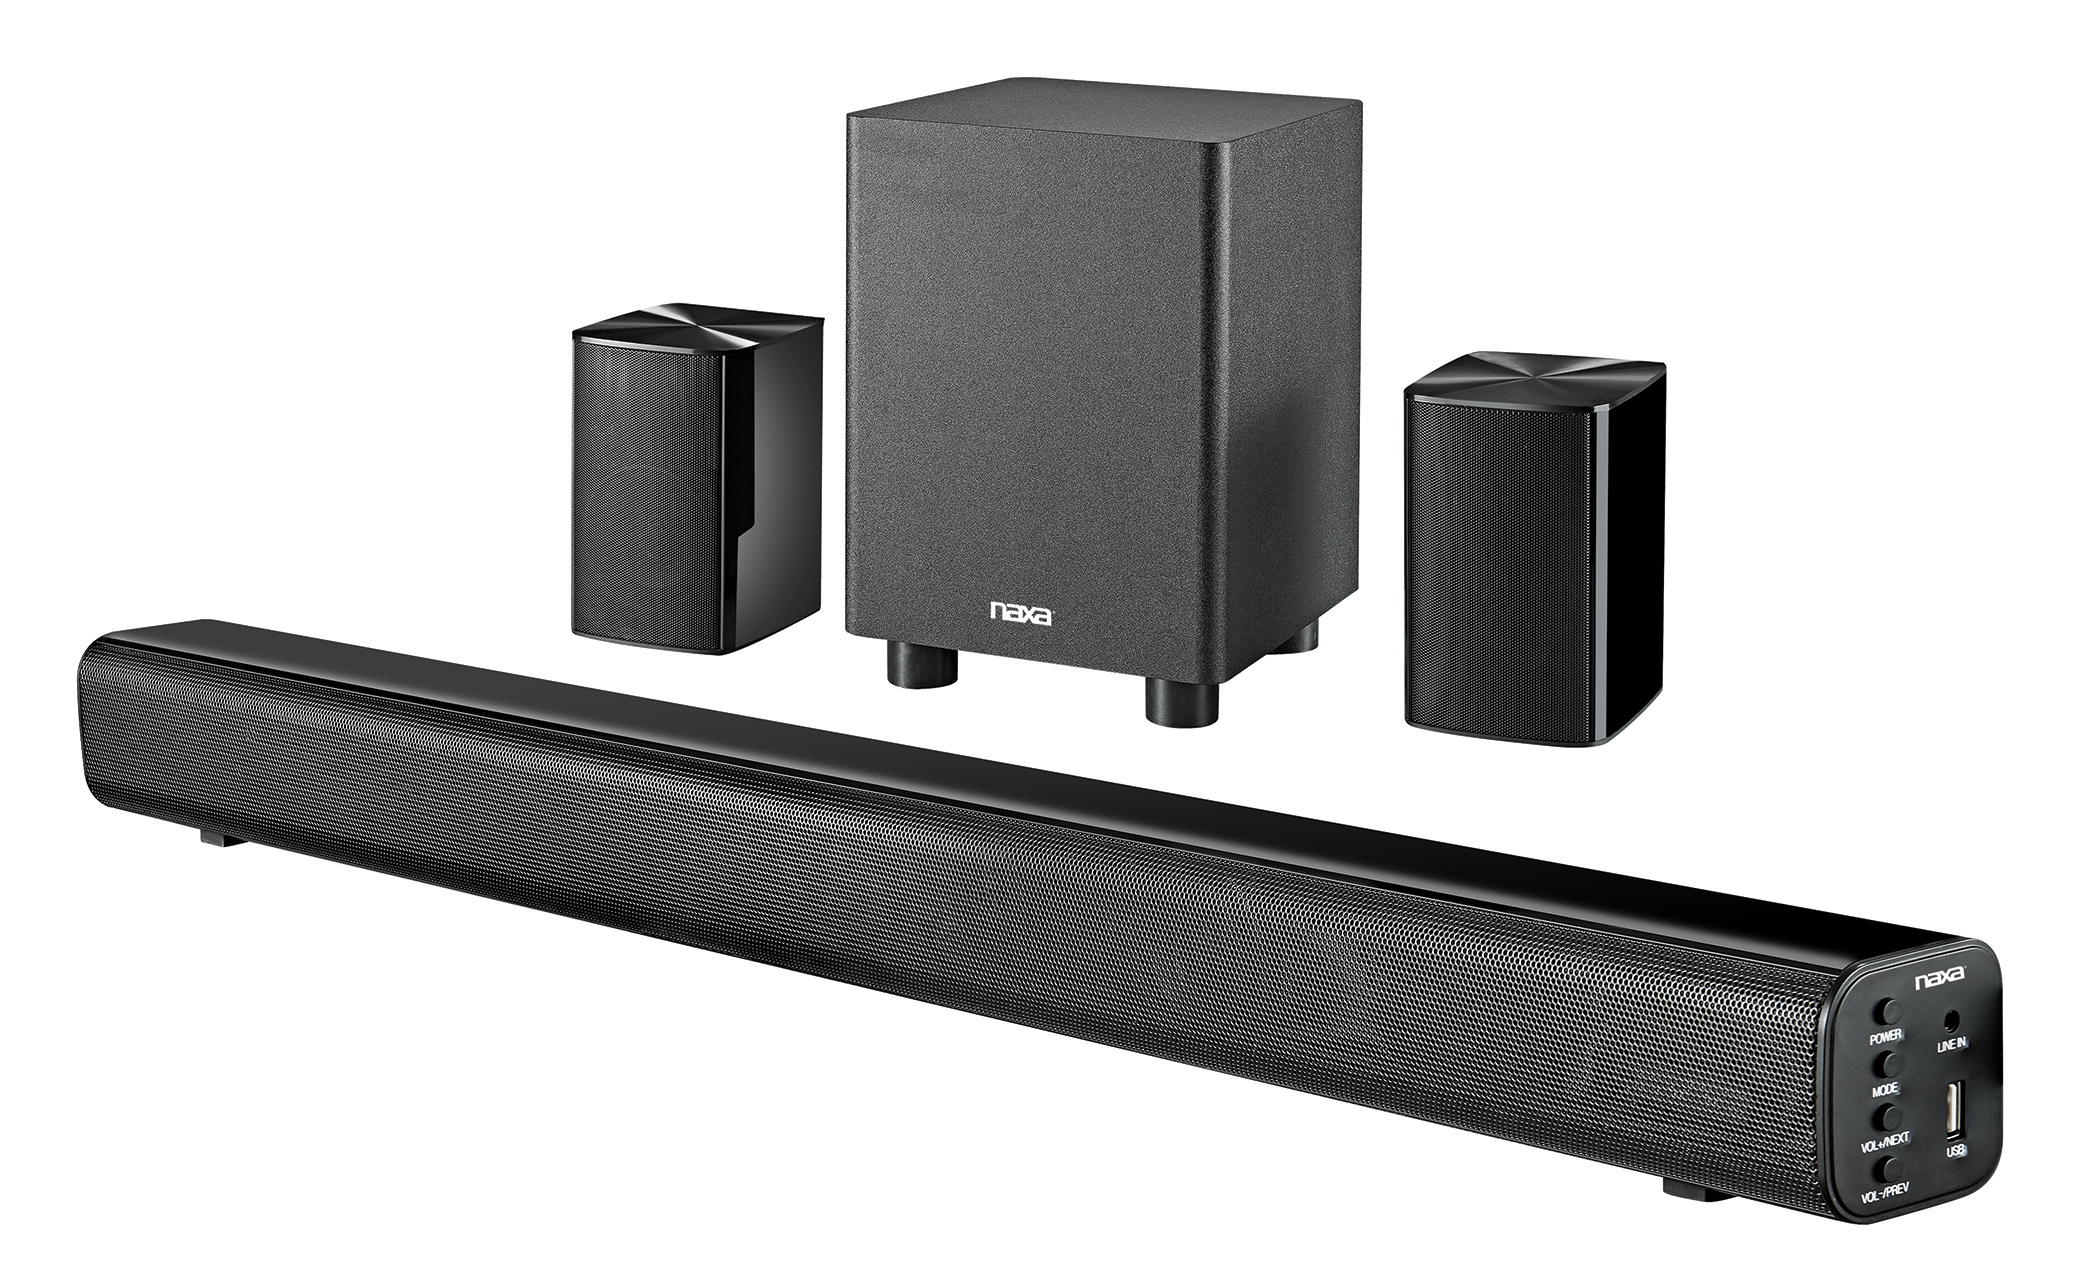 Full Wireless 5.1 Channel Home Theater System